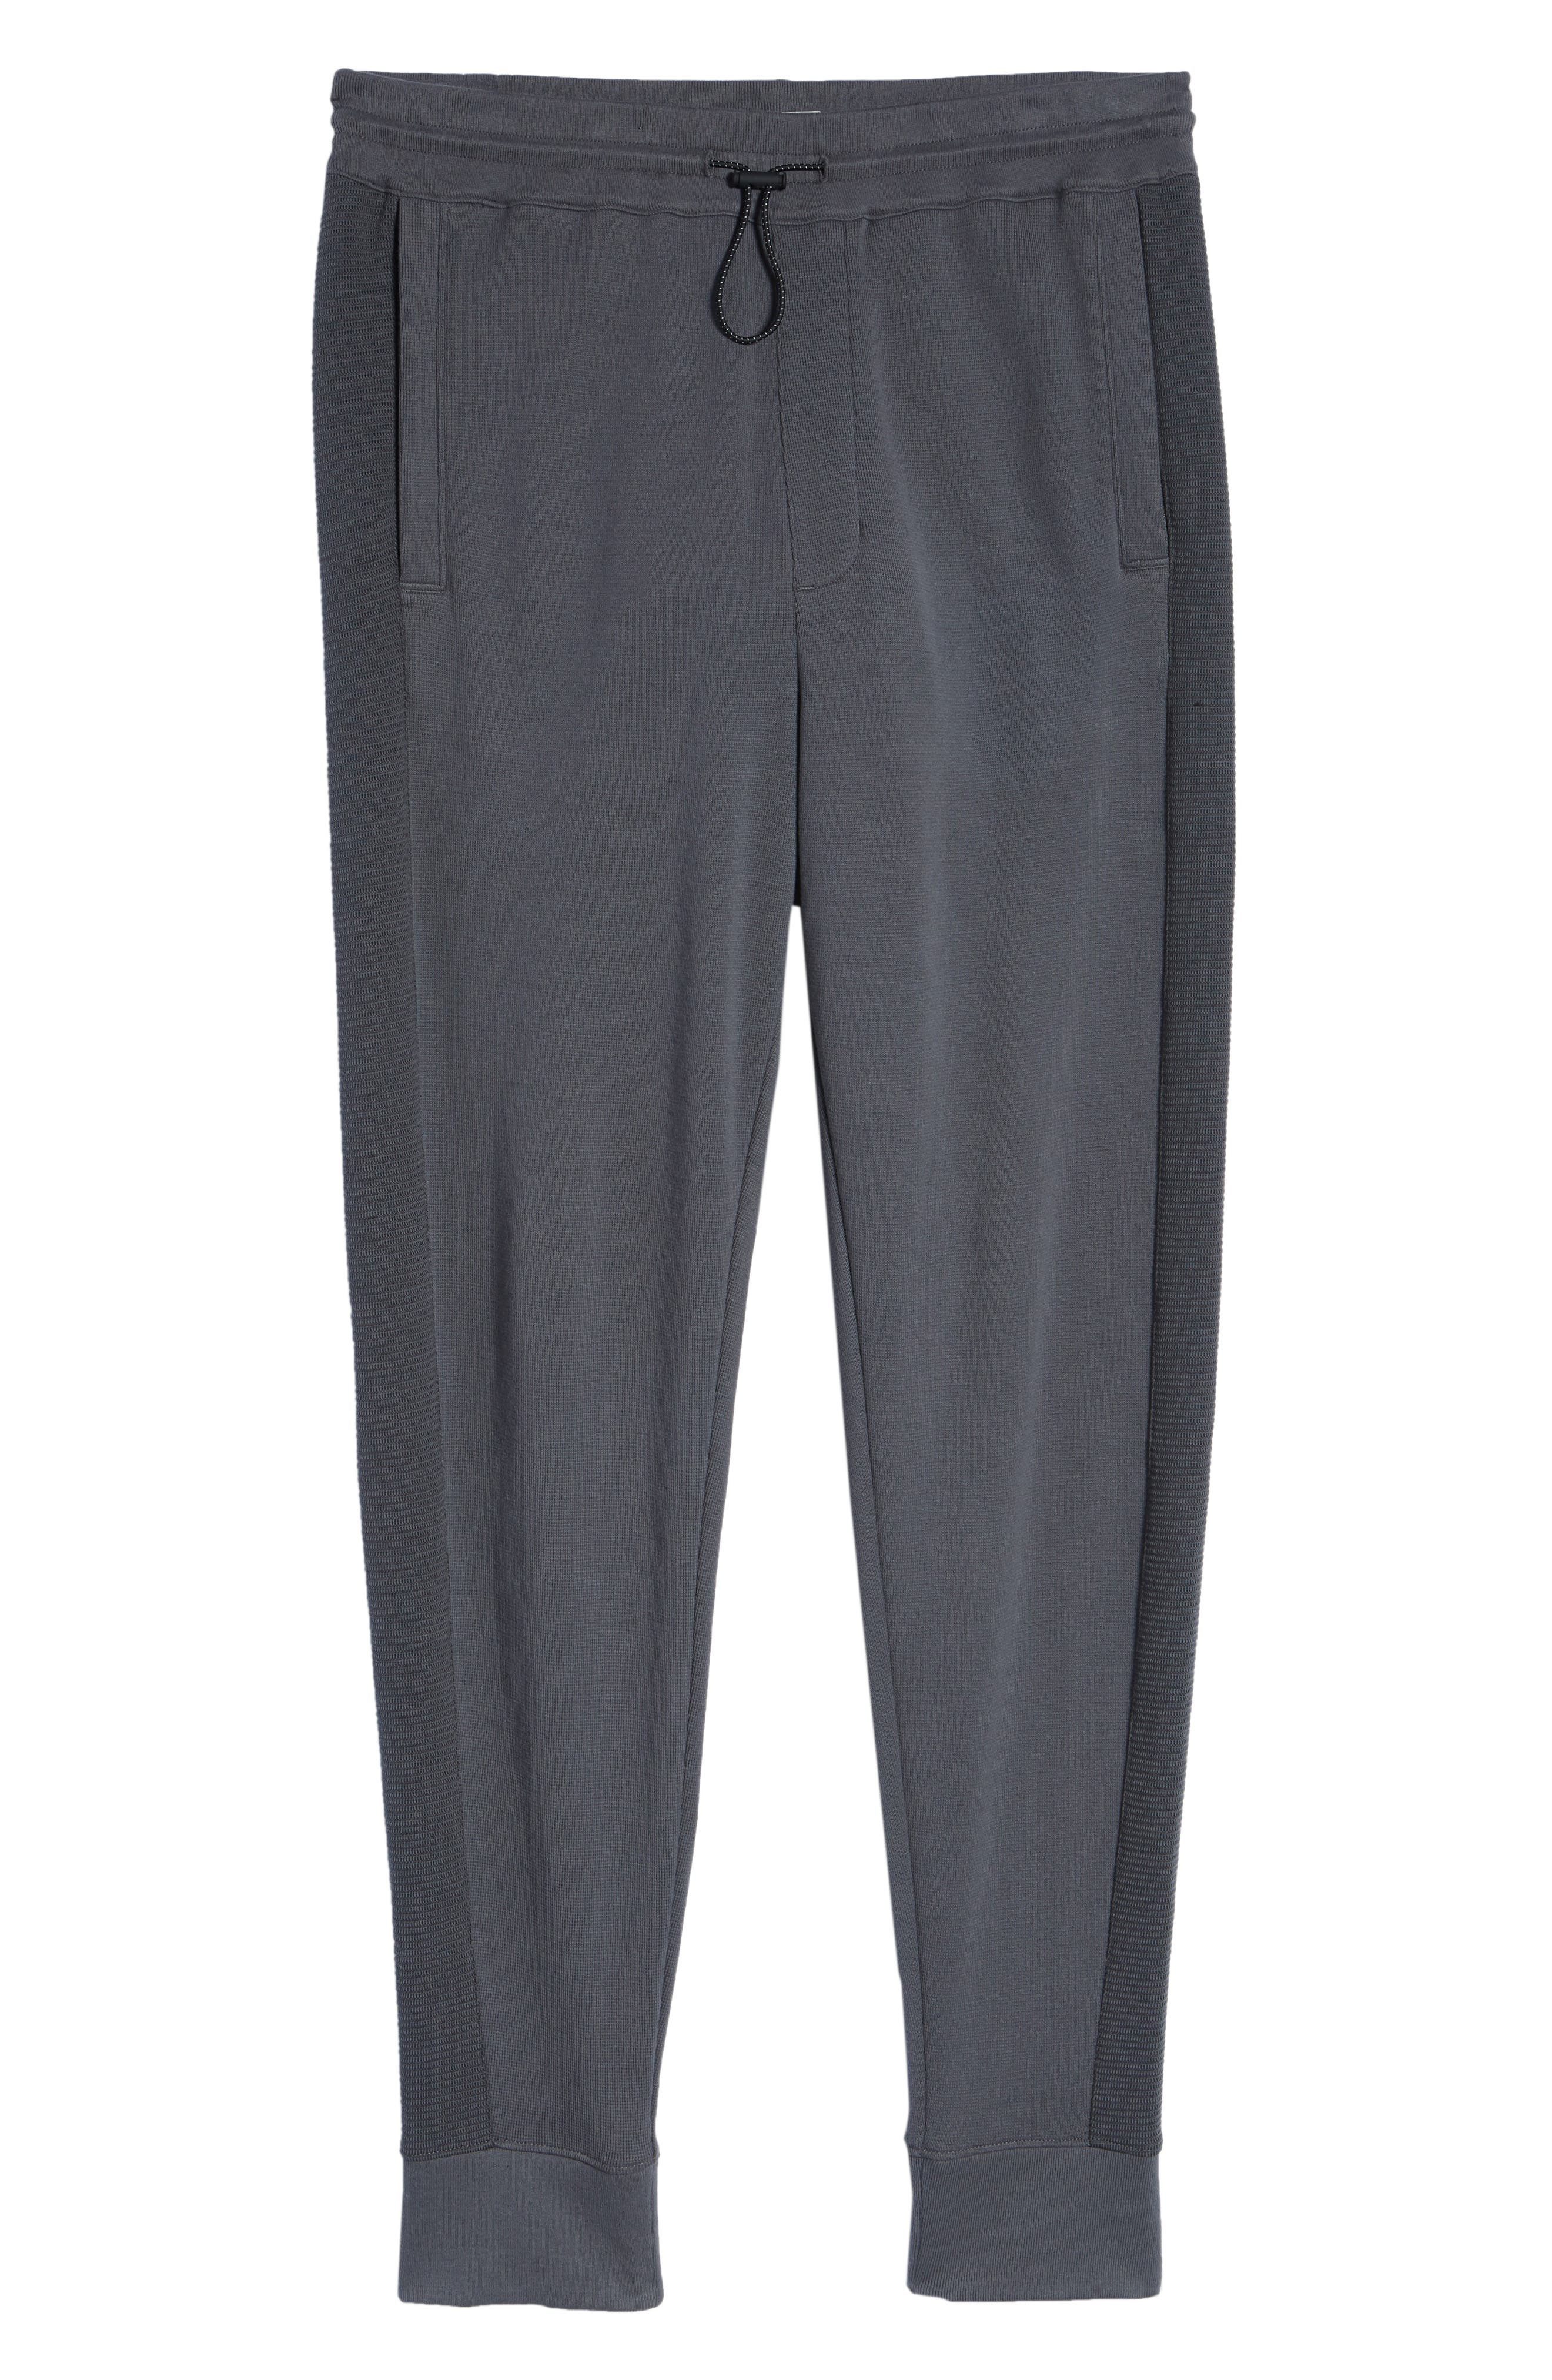 Ottoman Stitch Sweatpants,                             Alternate thumbnail 6, color,                             SLATE